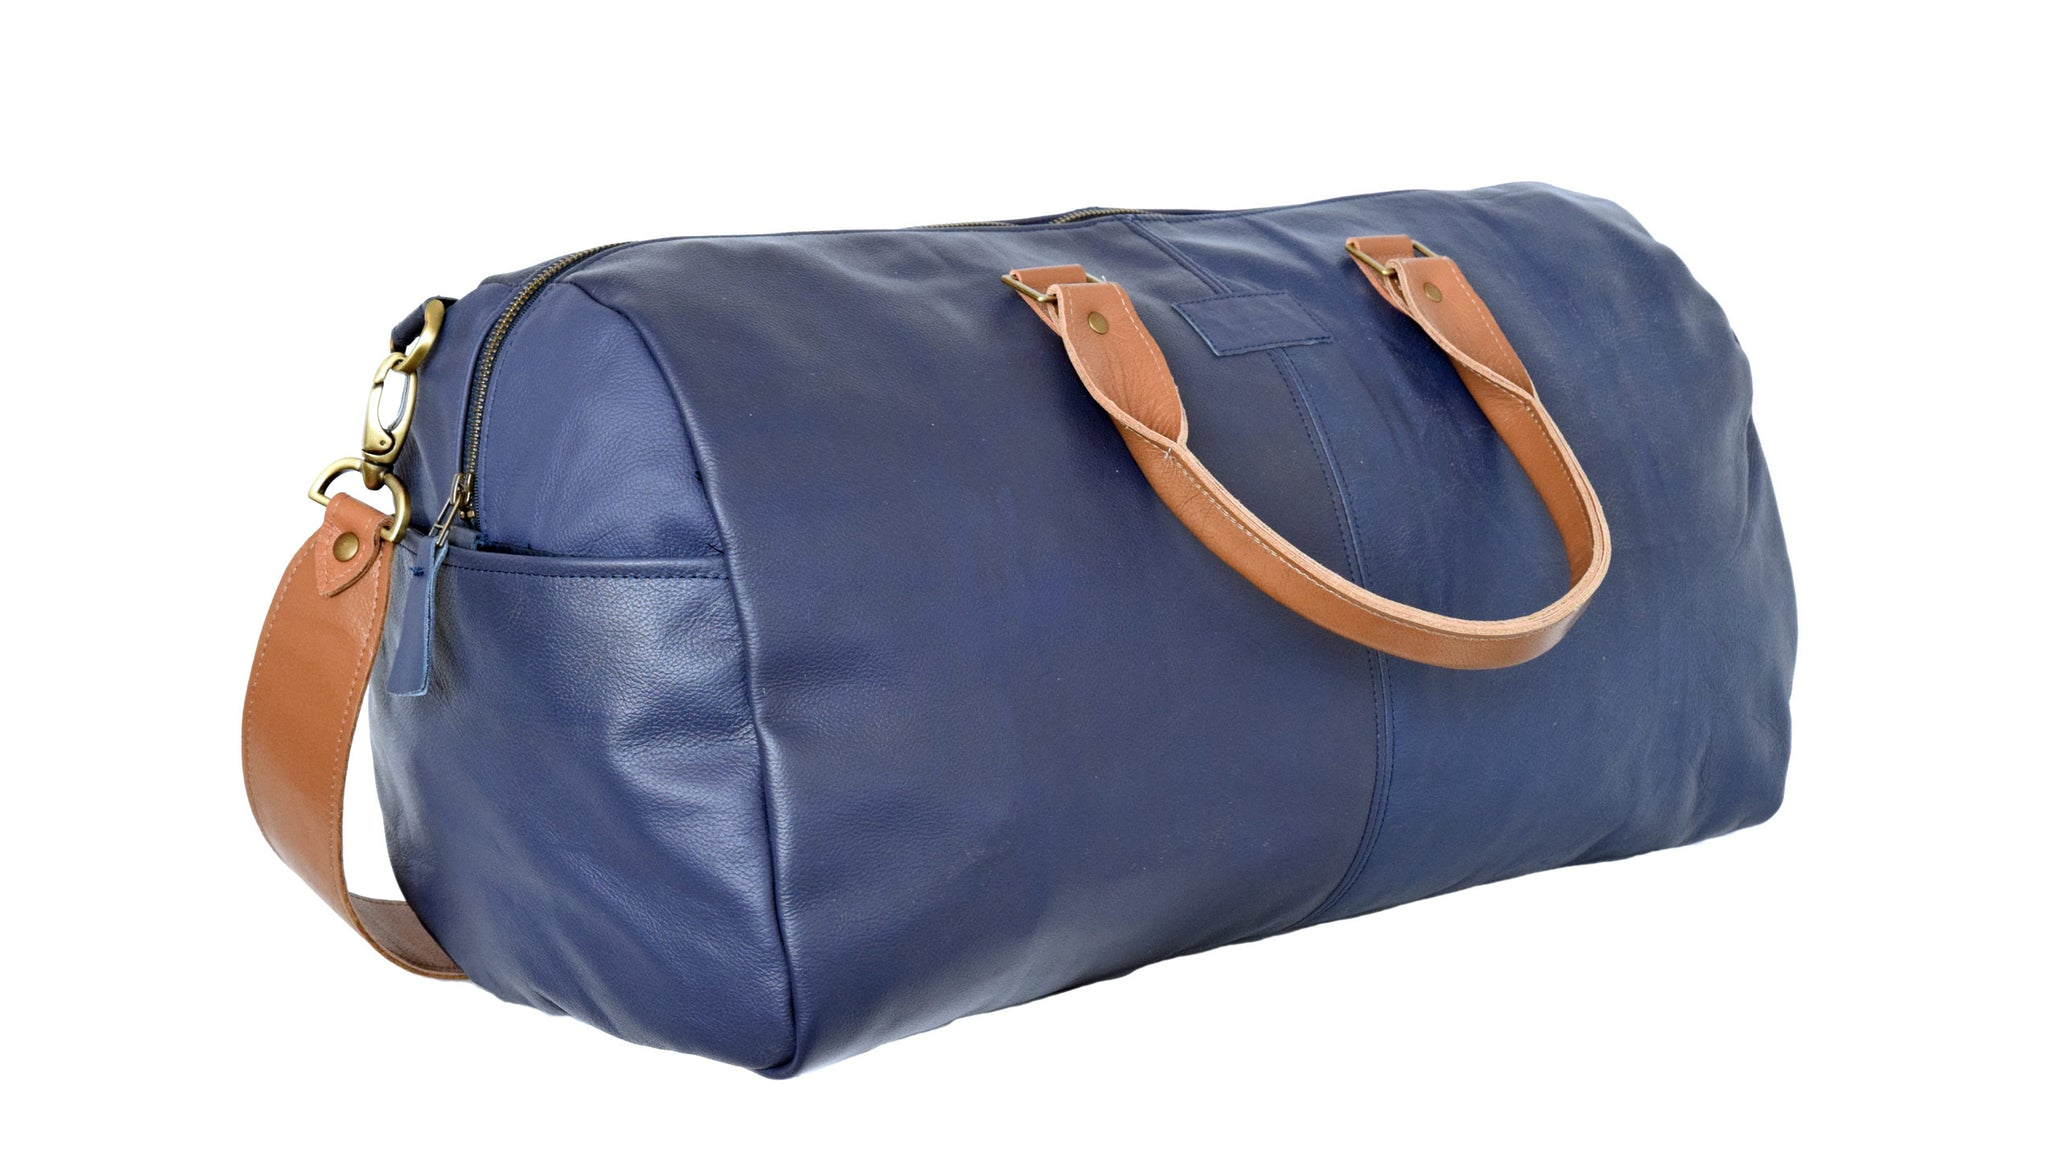 Southwest Airlines blue leather duffle bag upcycled from seat covers